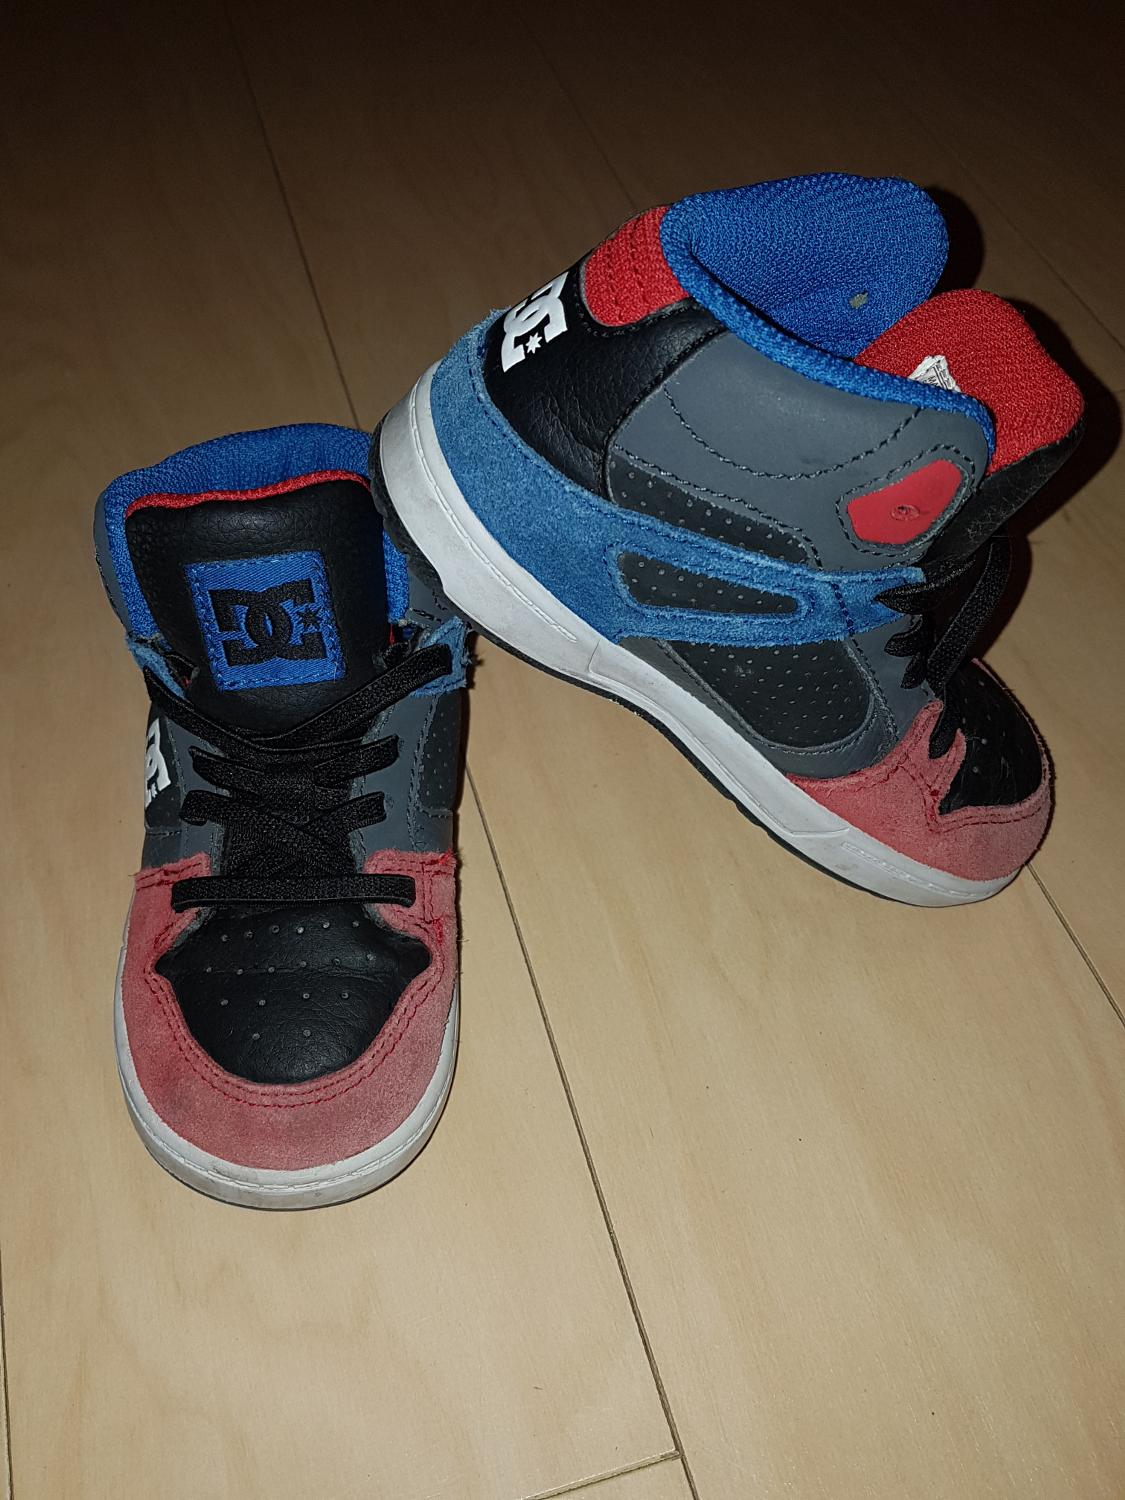 Find More Excellent Condition Super Cute Baby Boys Shoes